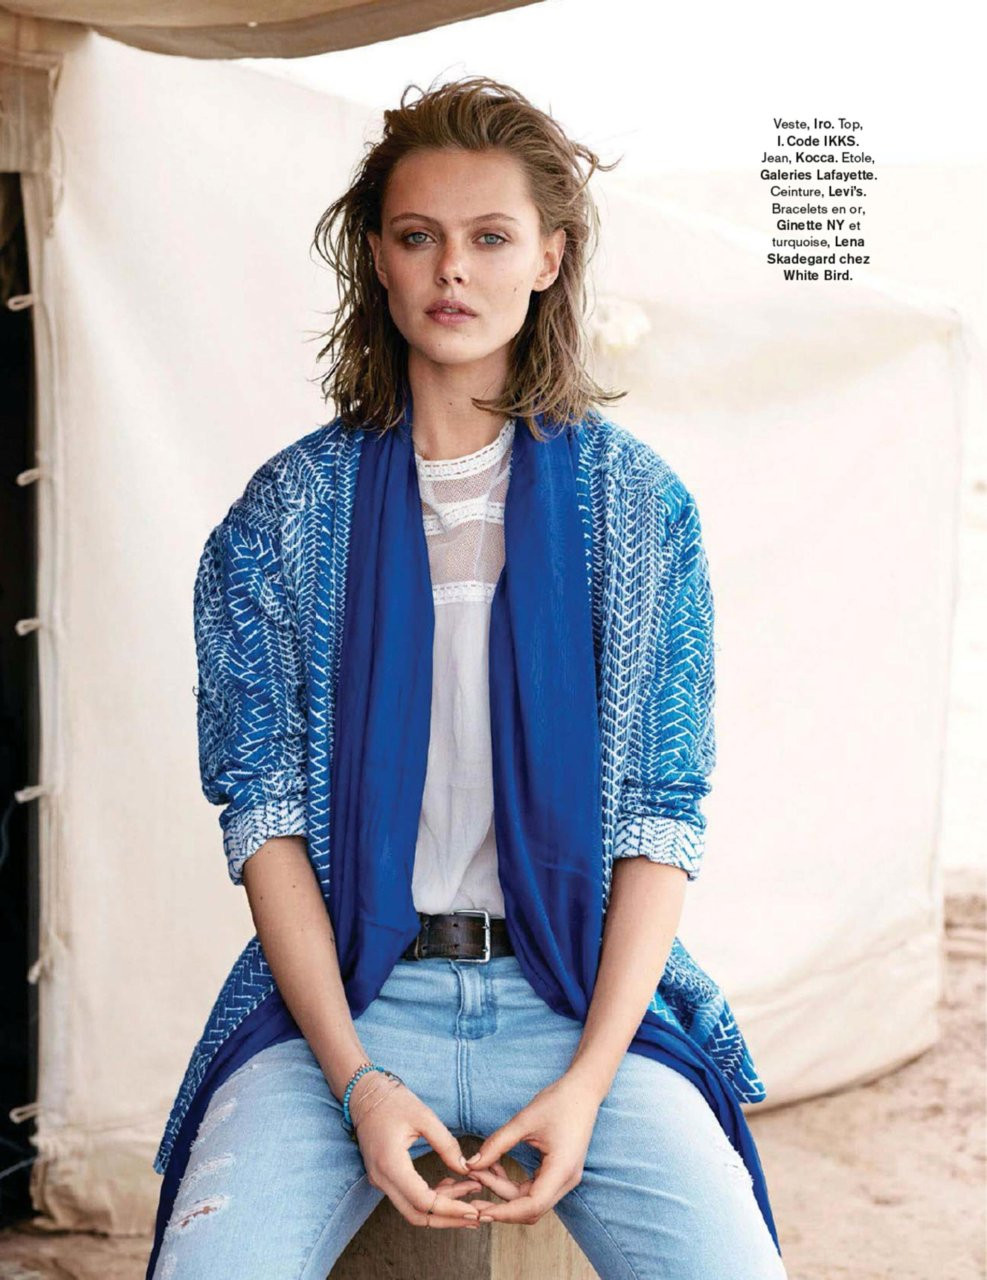 Frida Gustavsson Topless 10 TheFappening.nu